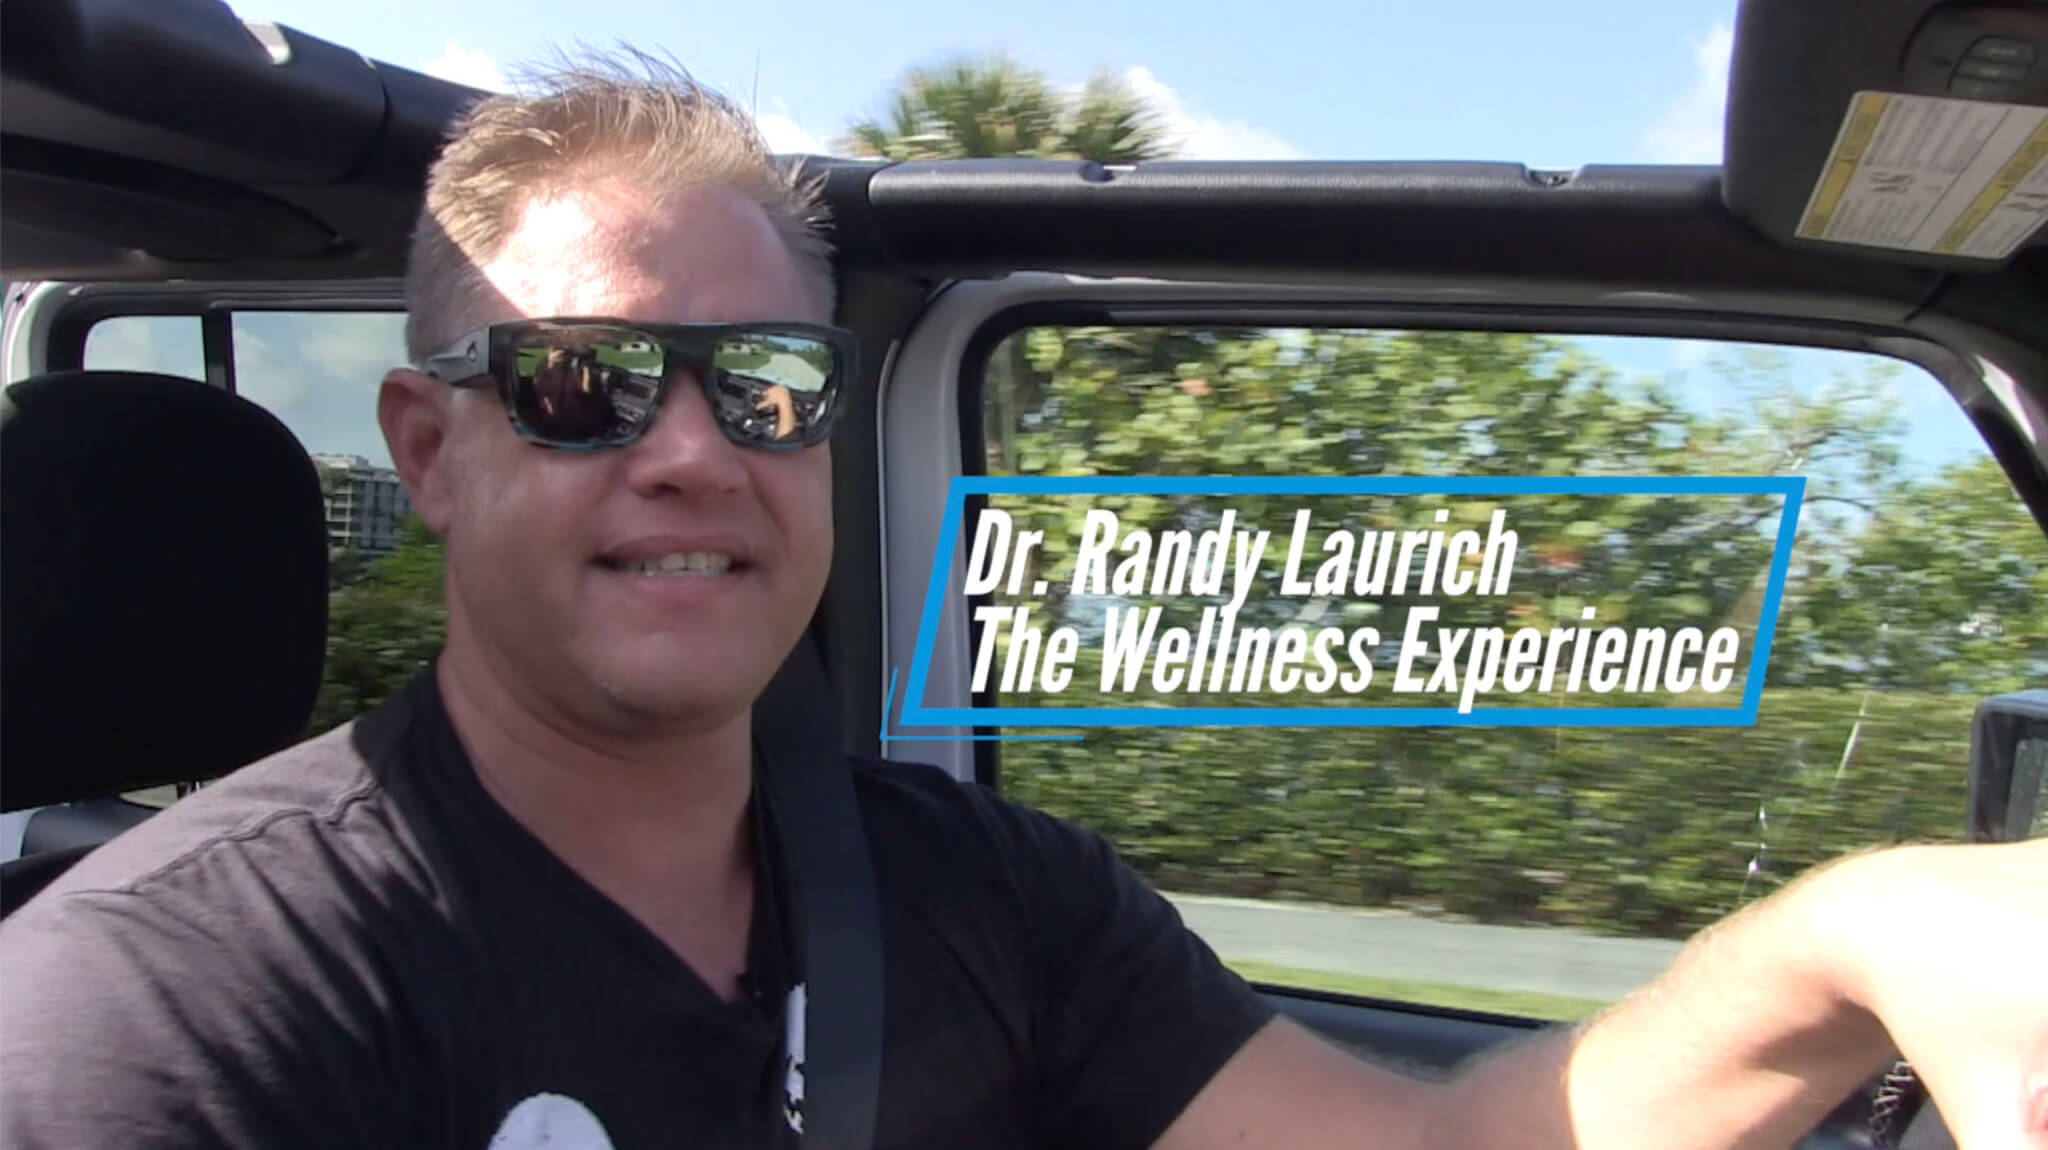 Dr. Randy Laurich Of The Wellness Experience Shares Plans For 2021